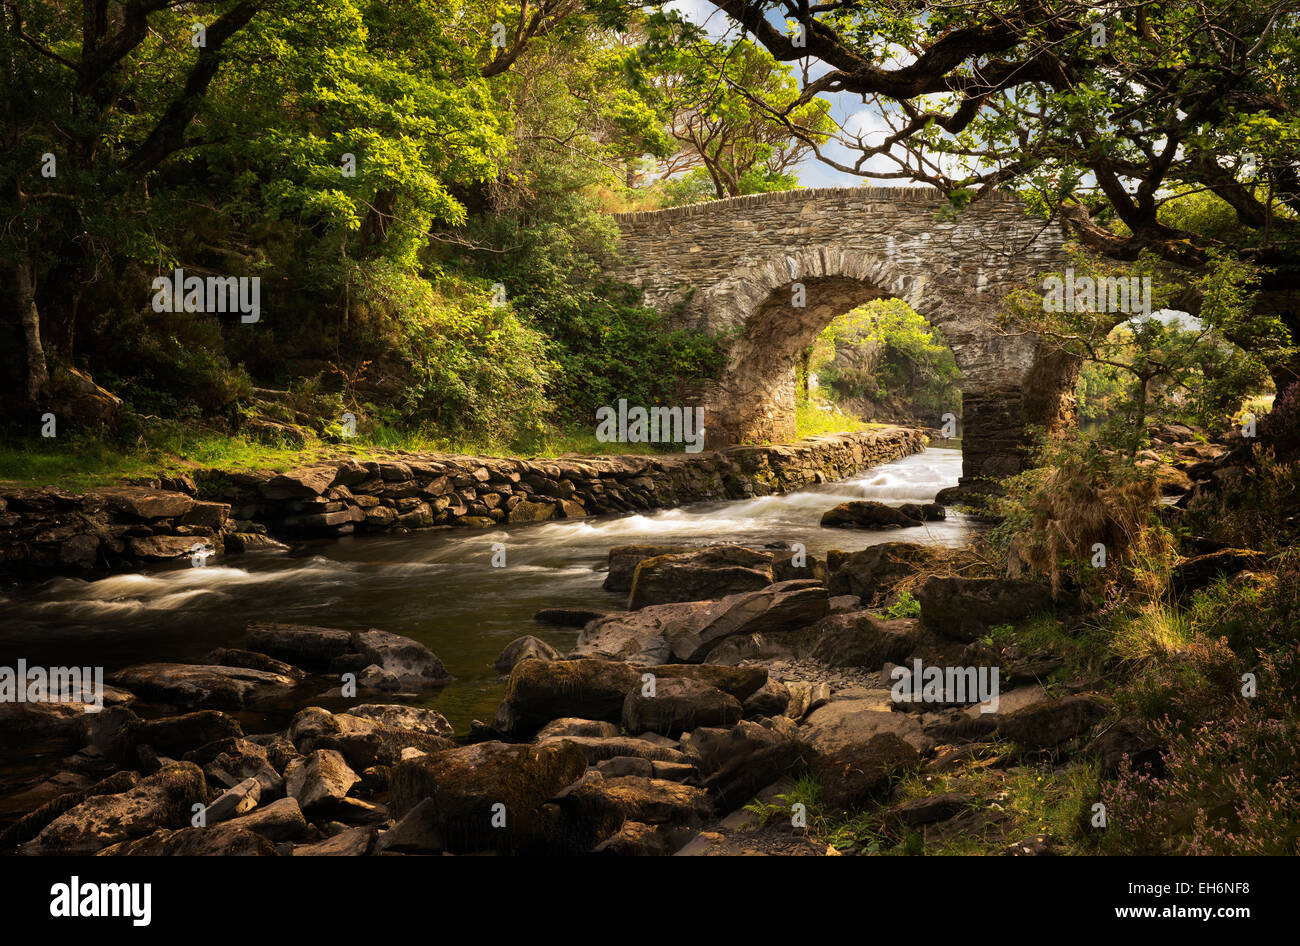 Old weir bridge. Kilanrney, lacs de Gap of Dunloe. Le Parc National de Killarney, Irlande Photo Stock